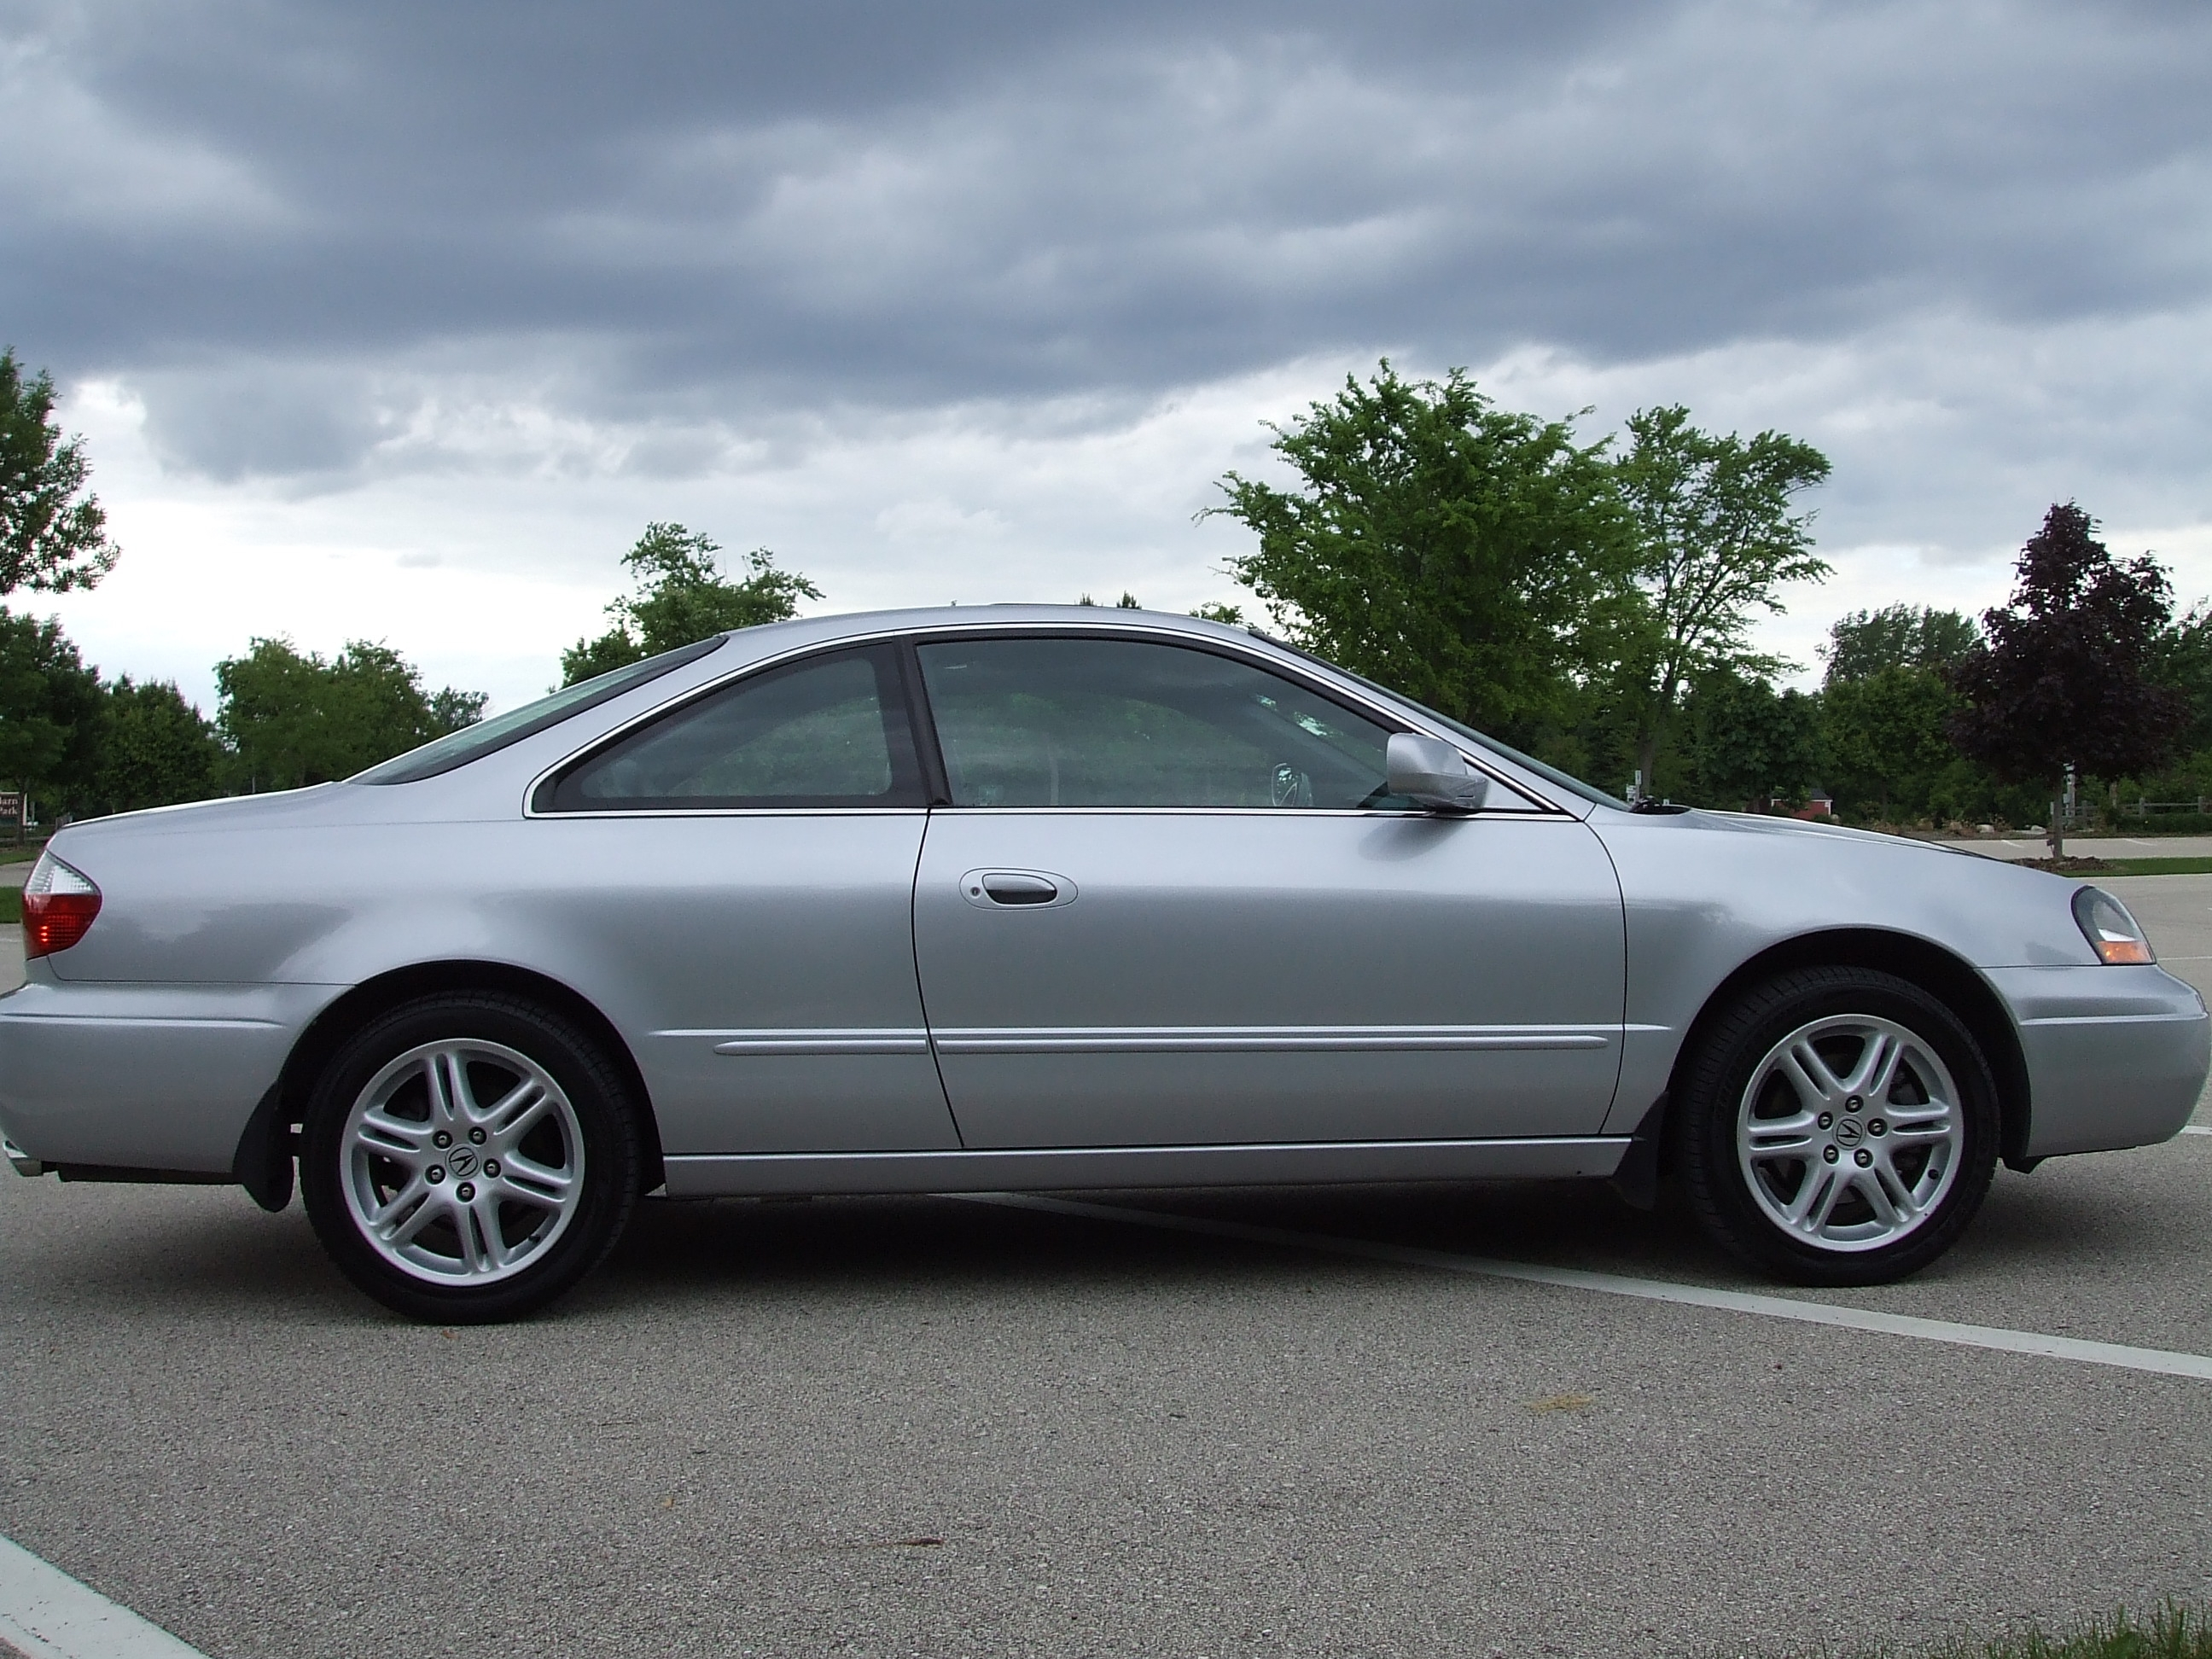 sniff0301 39 s 2003 acura cl in glendale wi. Black Bedroom Furniture Sets. Home Design Ideas